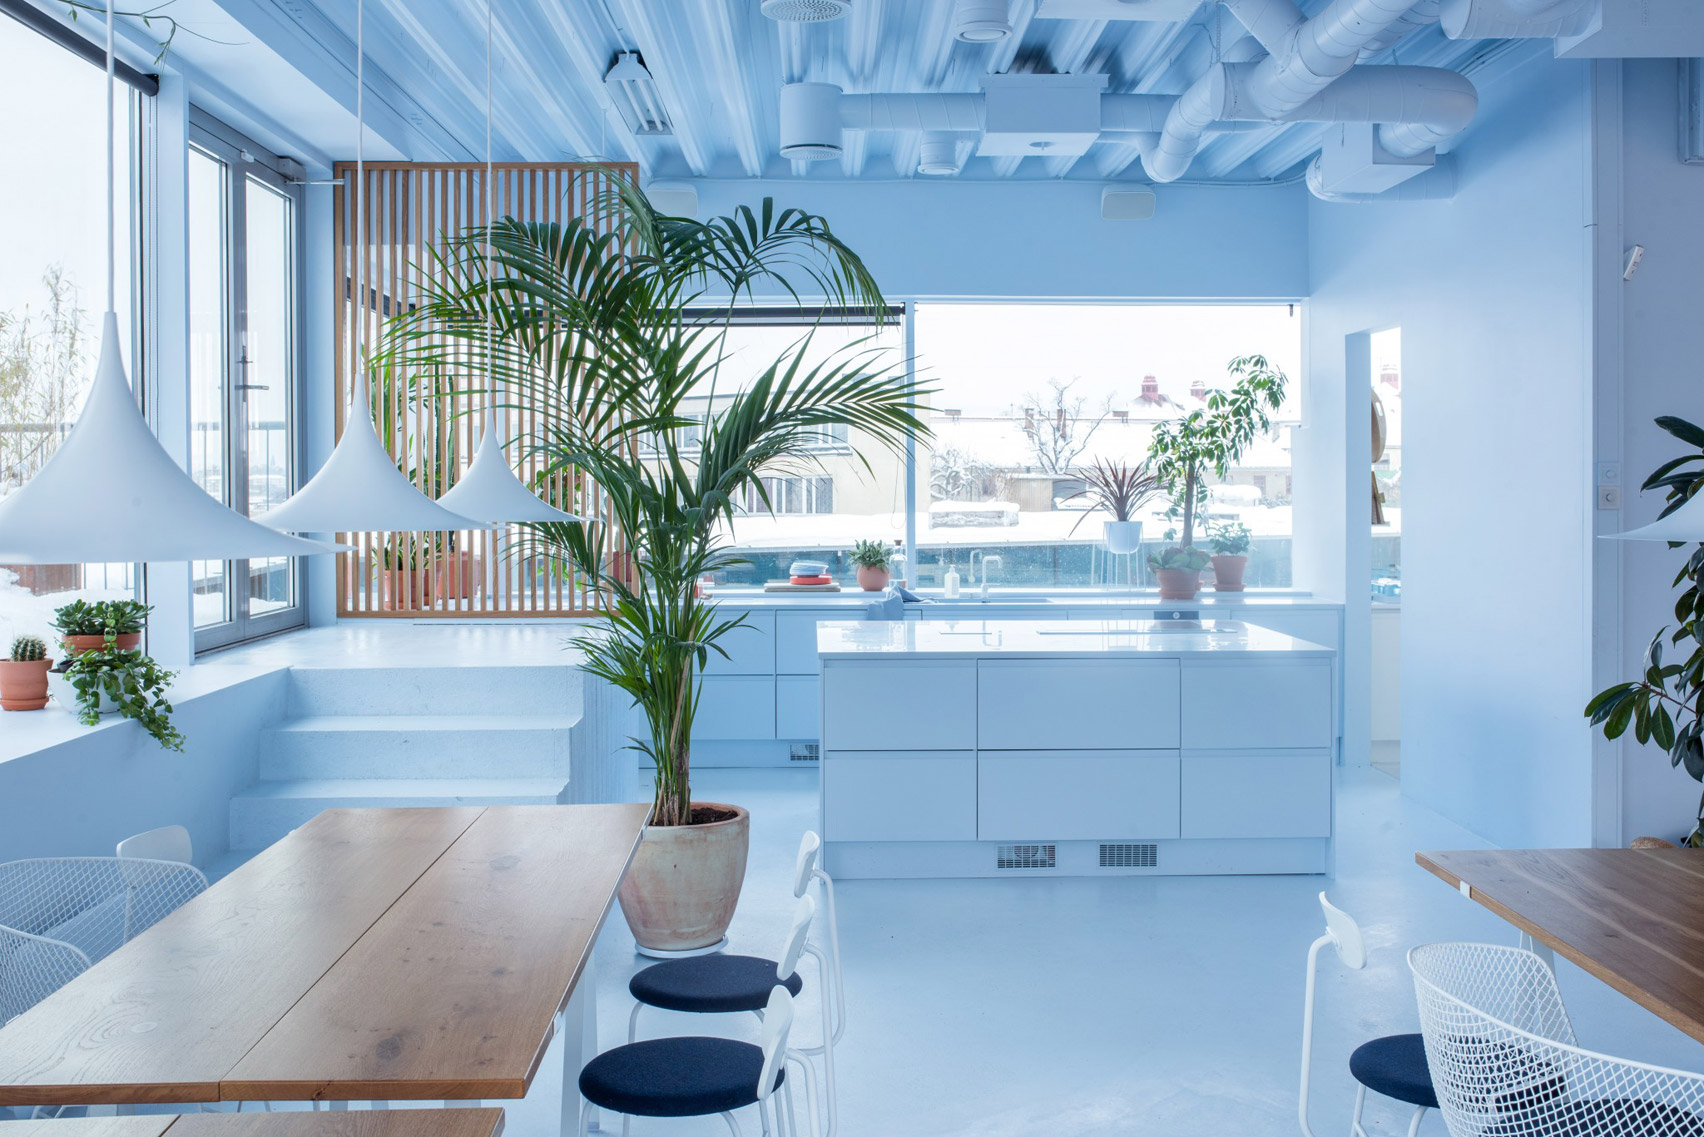 Scandinavian Spaceship office for Bakken & Bæck, designed by Kvistad